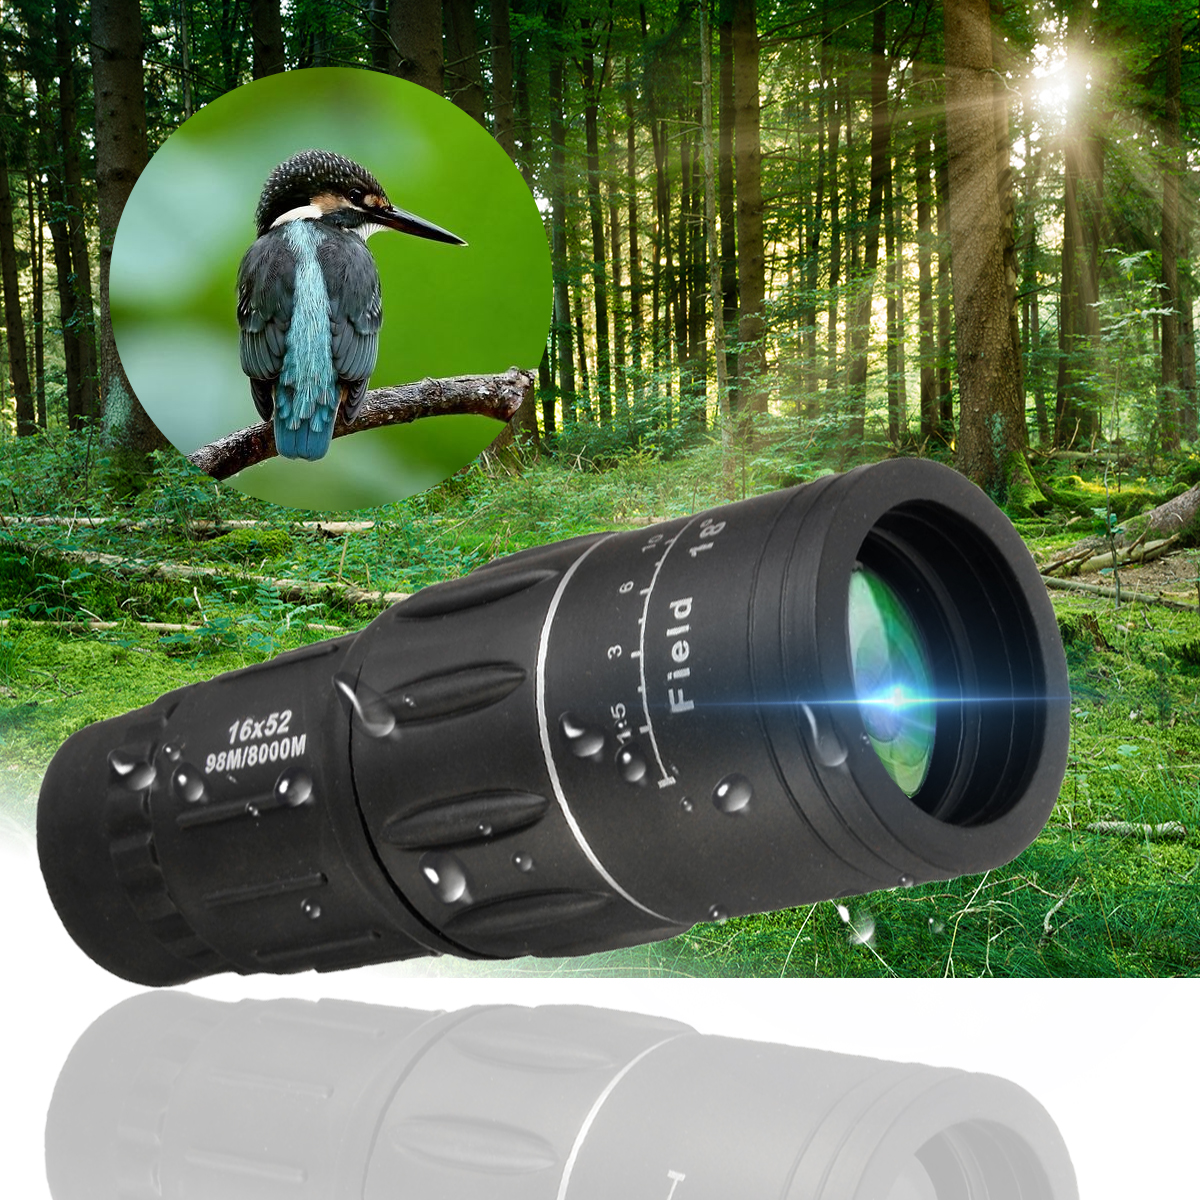 16x52 HD Portable Handheld Monocular Telescope Day Dual Focus Optical Zoom Waterproof Outdoor Camping Accessories For Hiking Camping Hunting Sightseeing